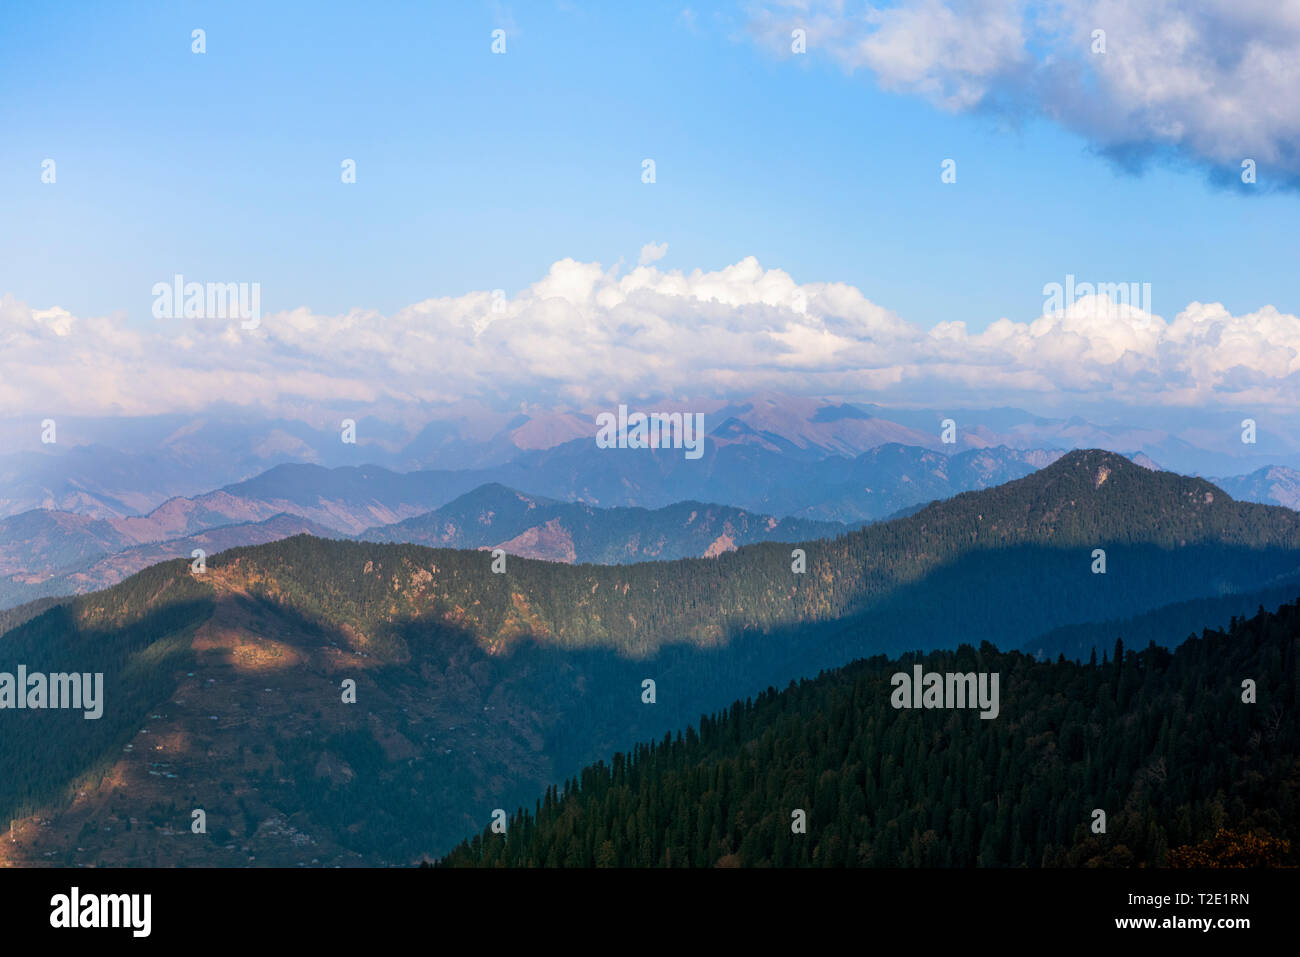 Himalayan mountain range in Himachal Pradesh, India - Stock Image